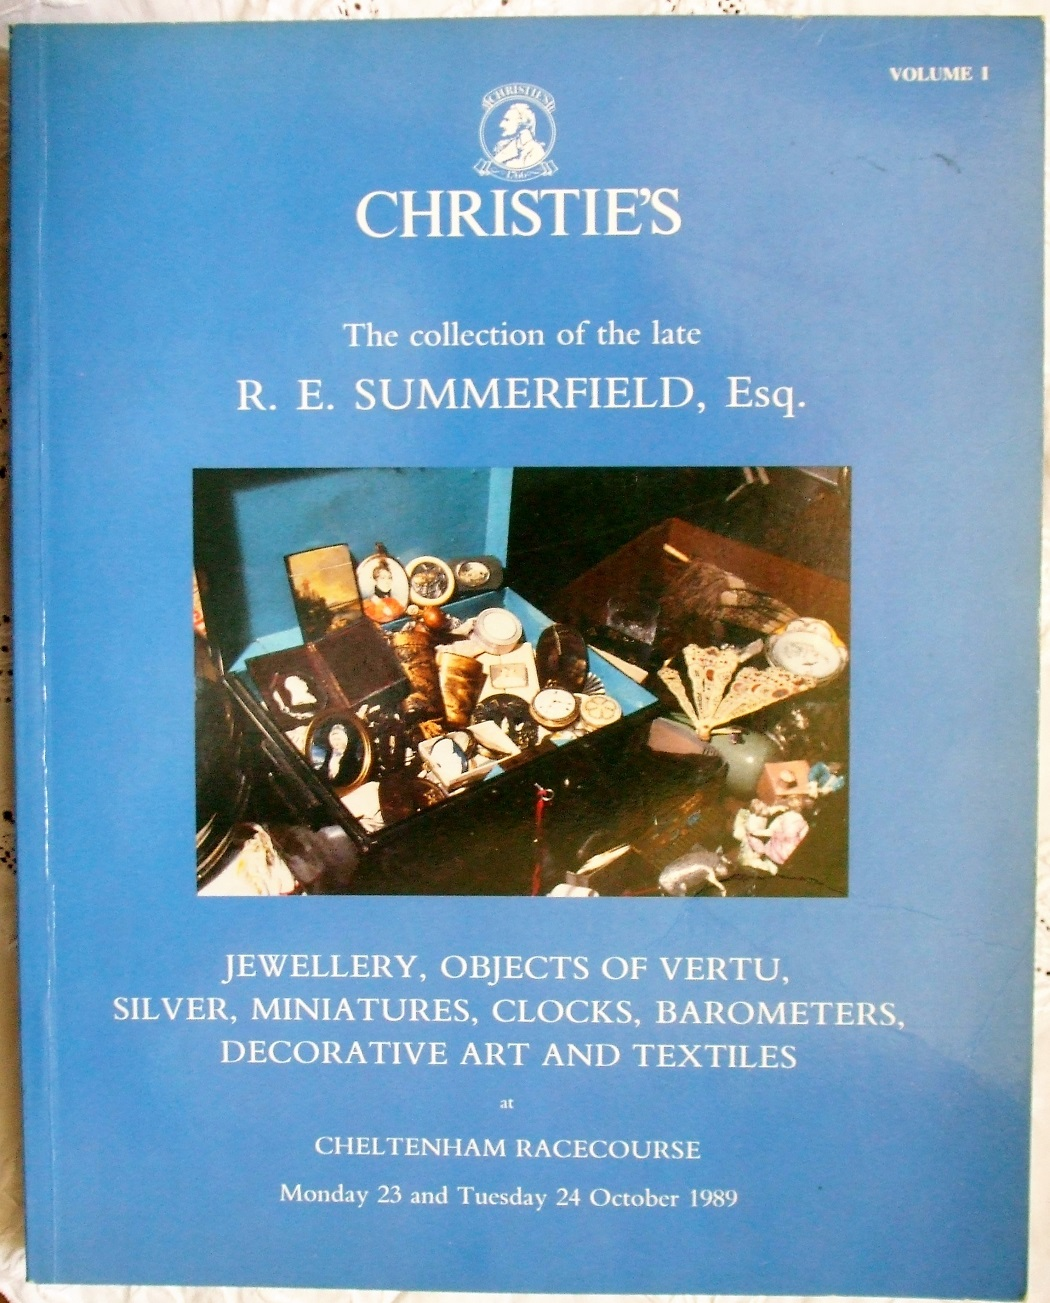 C HSE-3600 The Collection of The Late R.E. Summerfield Vol. I Cheltenham Racecourse 23. - 24. 10. 1989